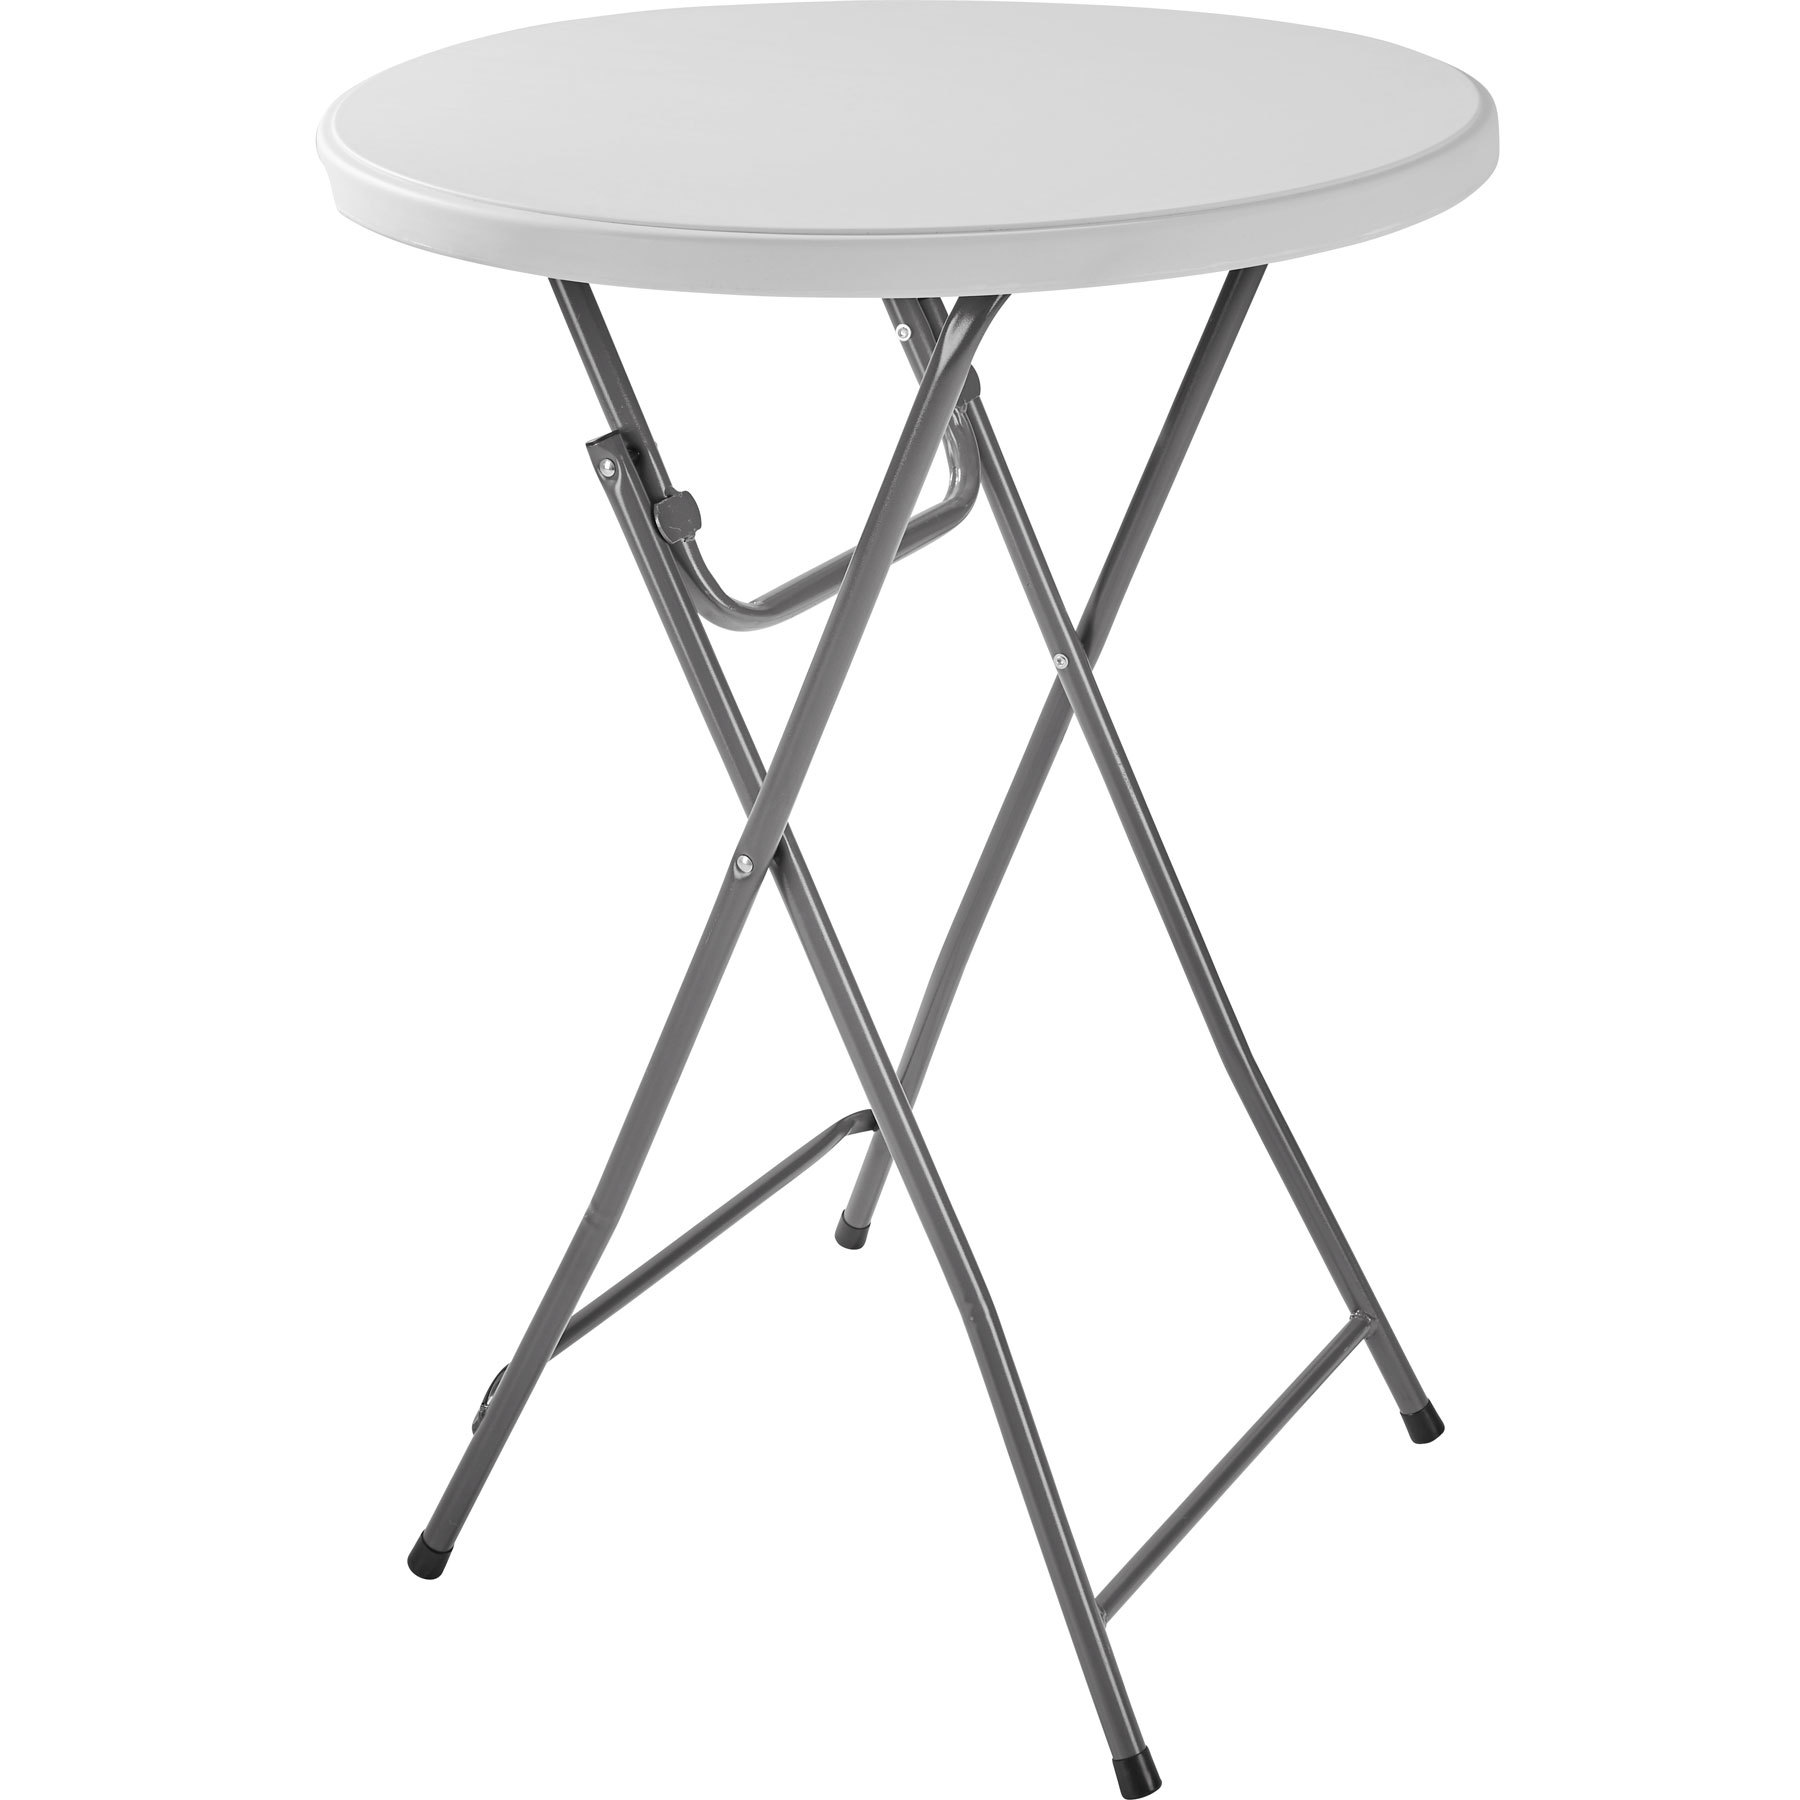 Table Pliante Légère Table Haute Table De Jardin Table De Bar Table Haute Mange Debout Table De Bistro Pliante 80 Cm X 80 Cm X 110 Cm Gris